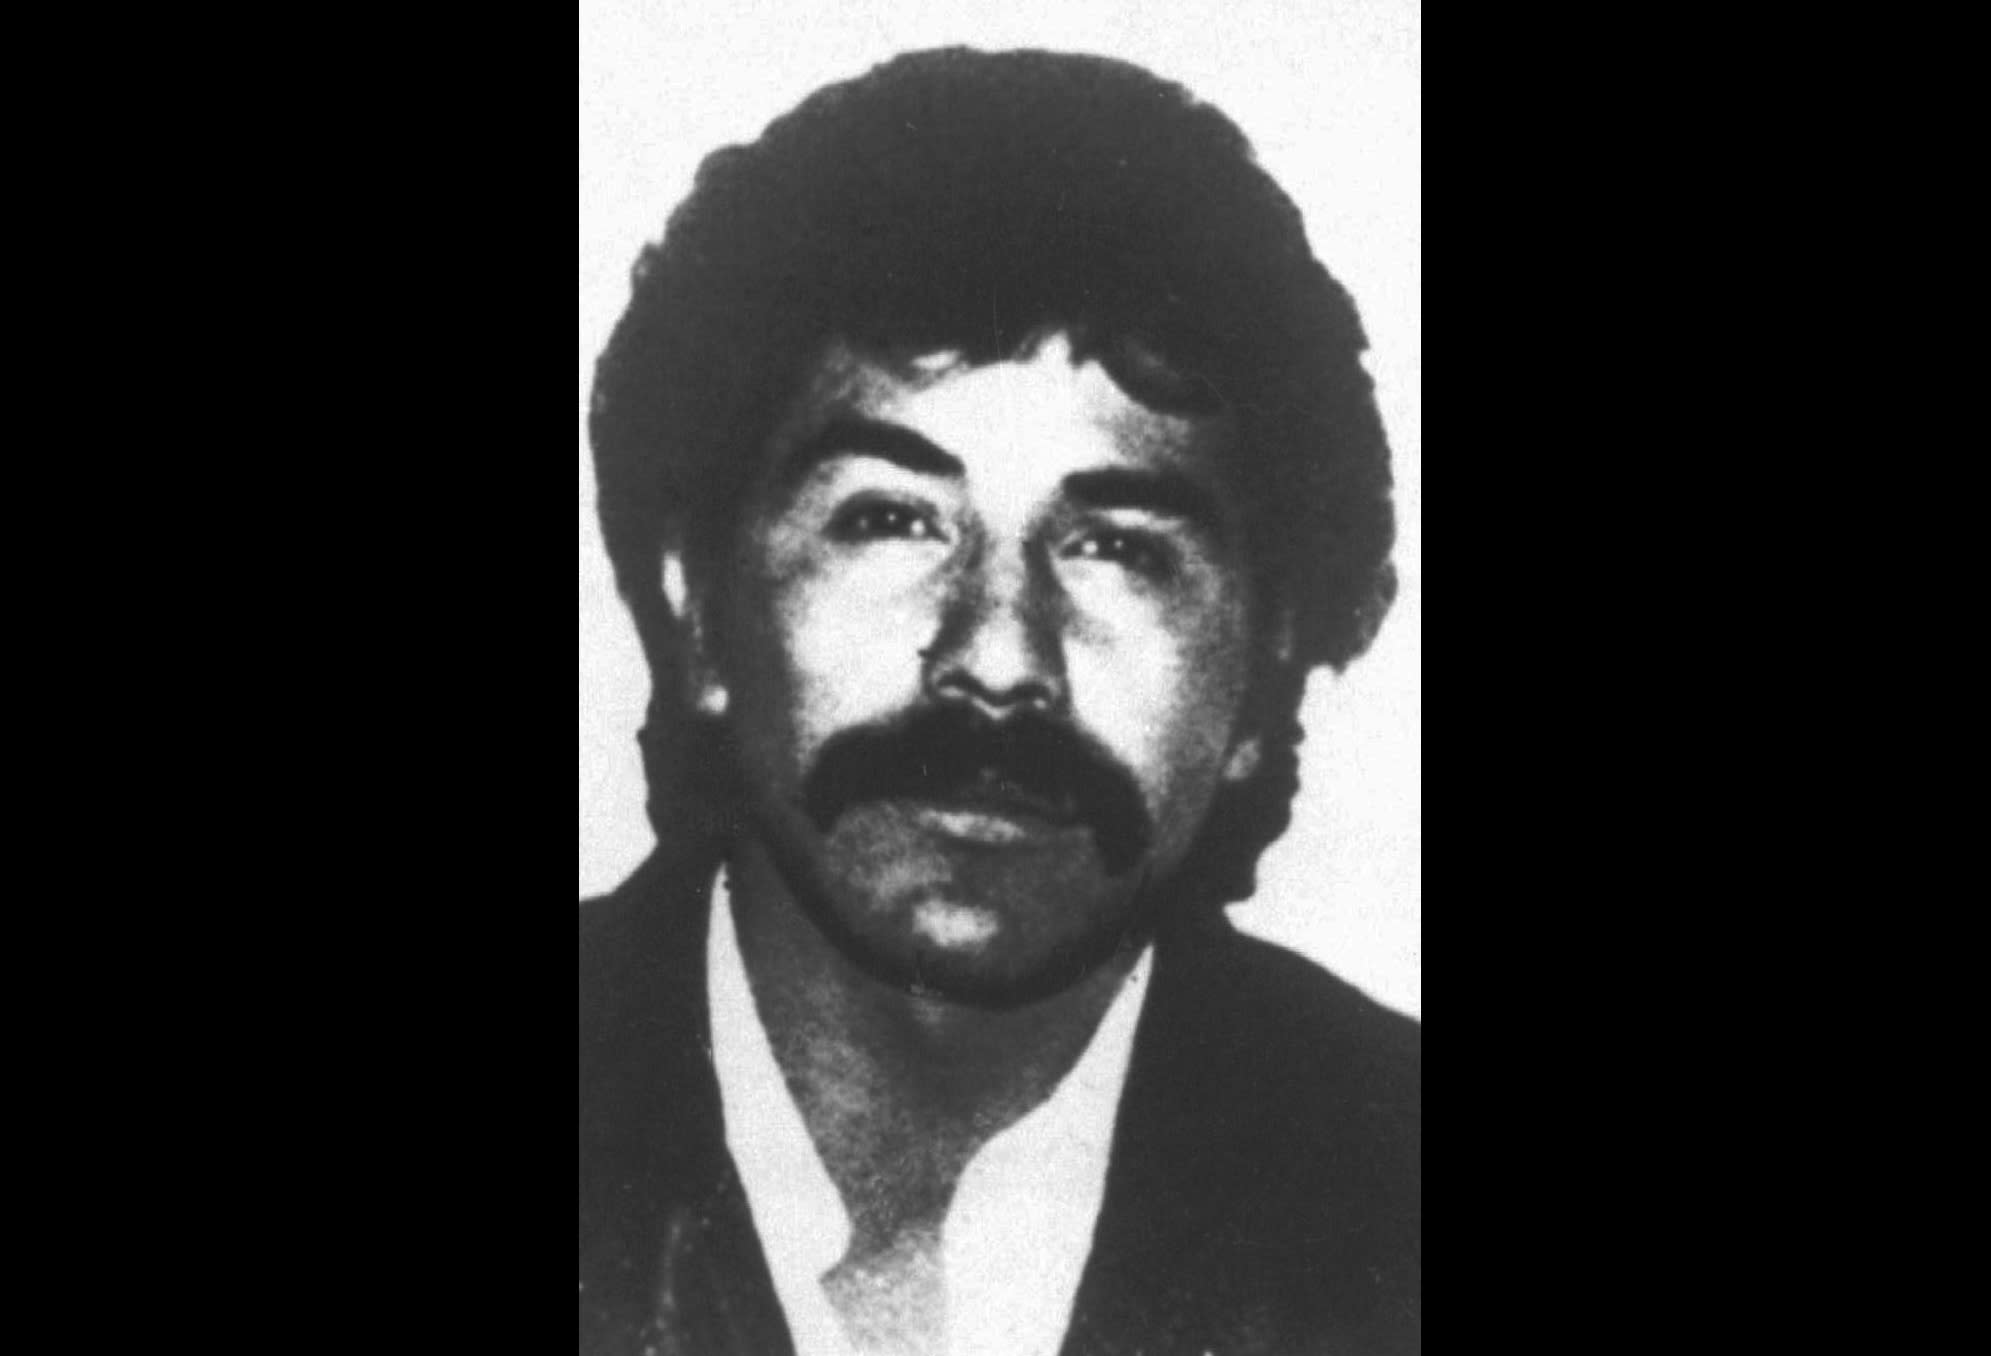 The undated file photo distributed by the Mexican government shows Rafael Caro Quintero, considered the grandfather of Mexican drug trafficking. A Mexican court has ordered the release of Caro Quintero after 28 years in prison for the 1985 kidnapping and killing of U.S. Drug Enforcement Administration agent Enrique Camarena, a brutal murder that marked a low-point in U.S.-Mexico relations. (AP Photo/File)